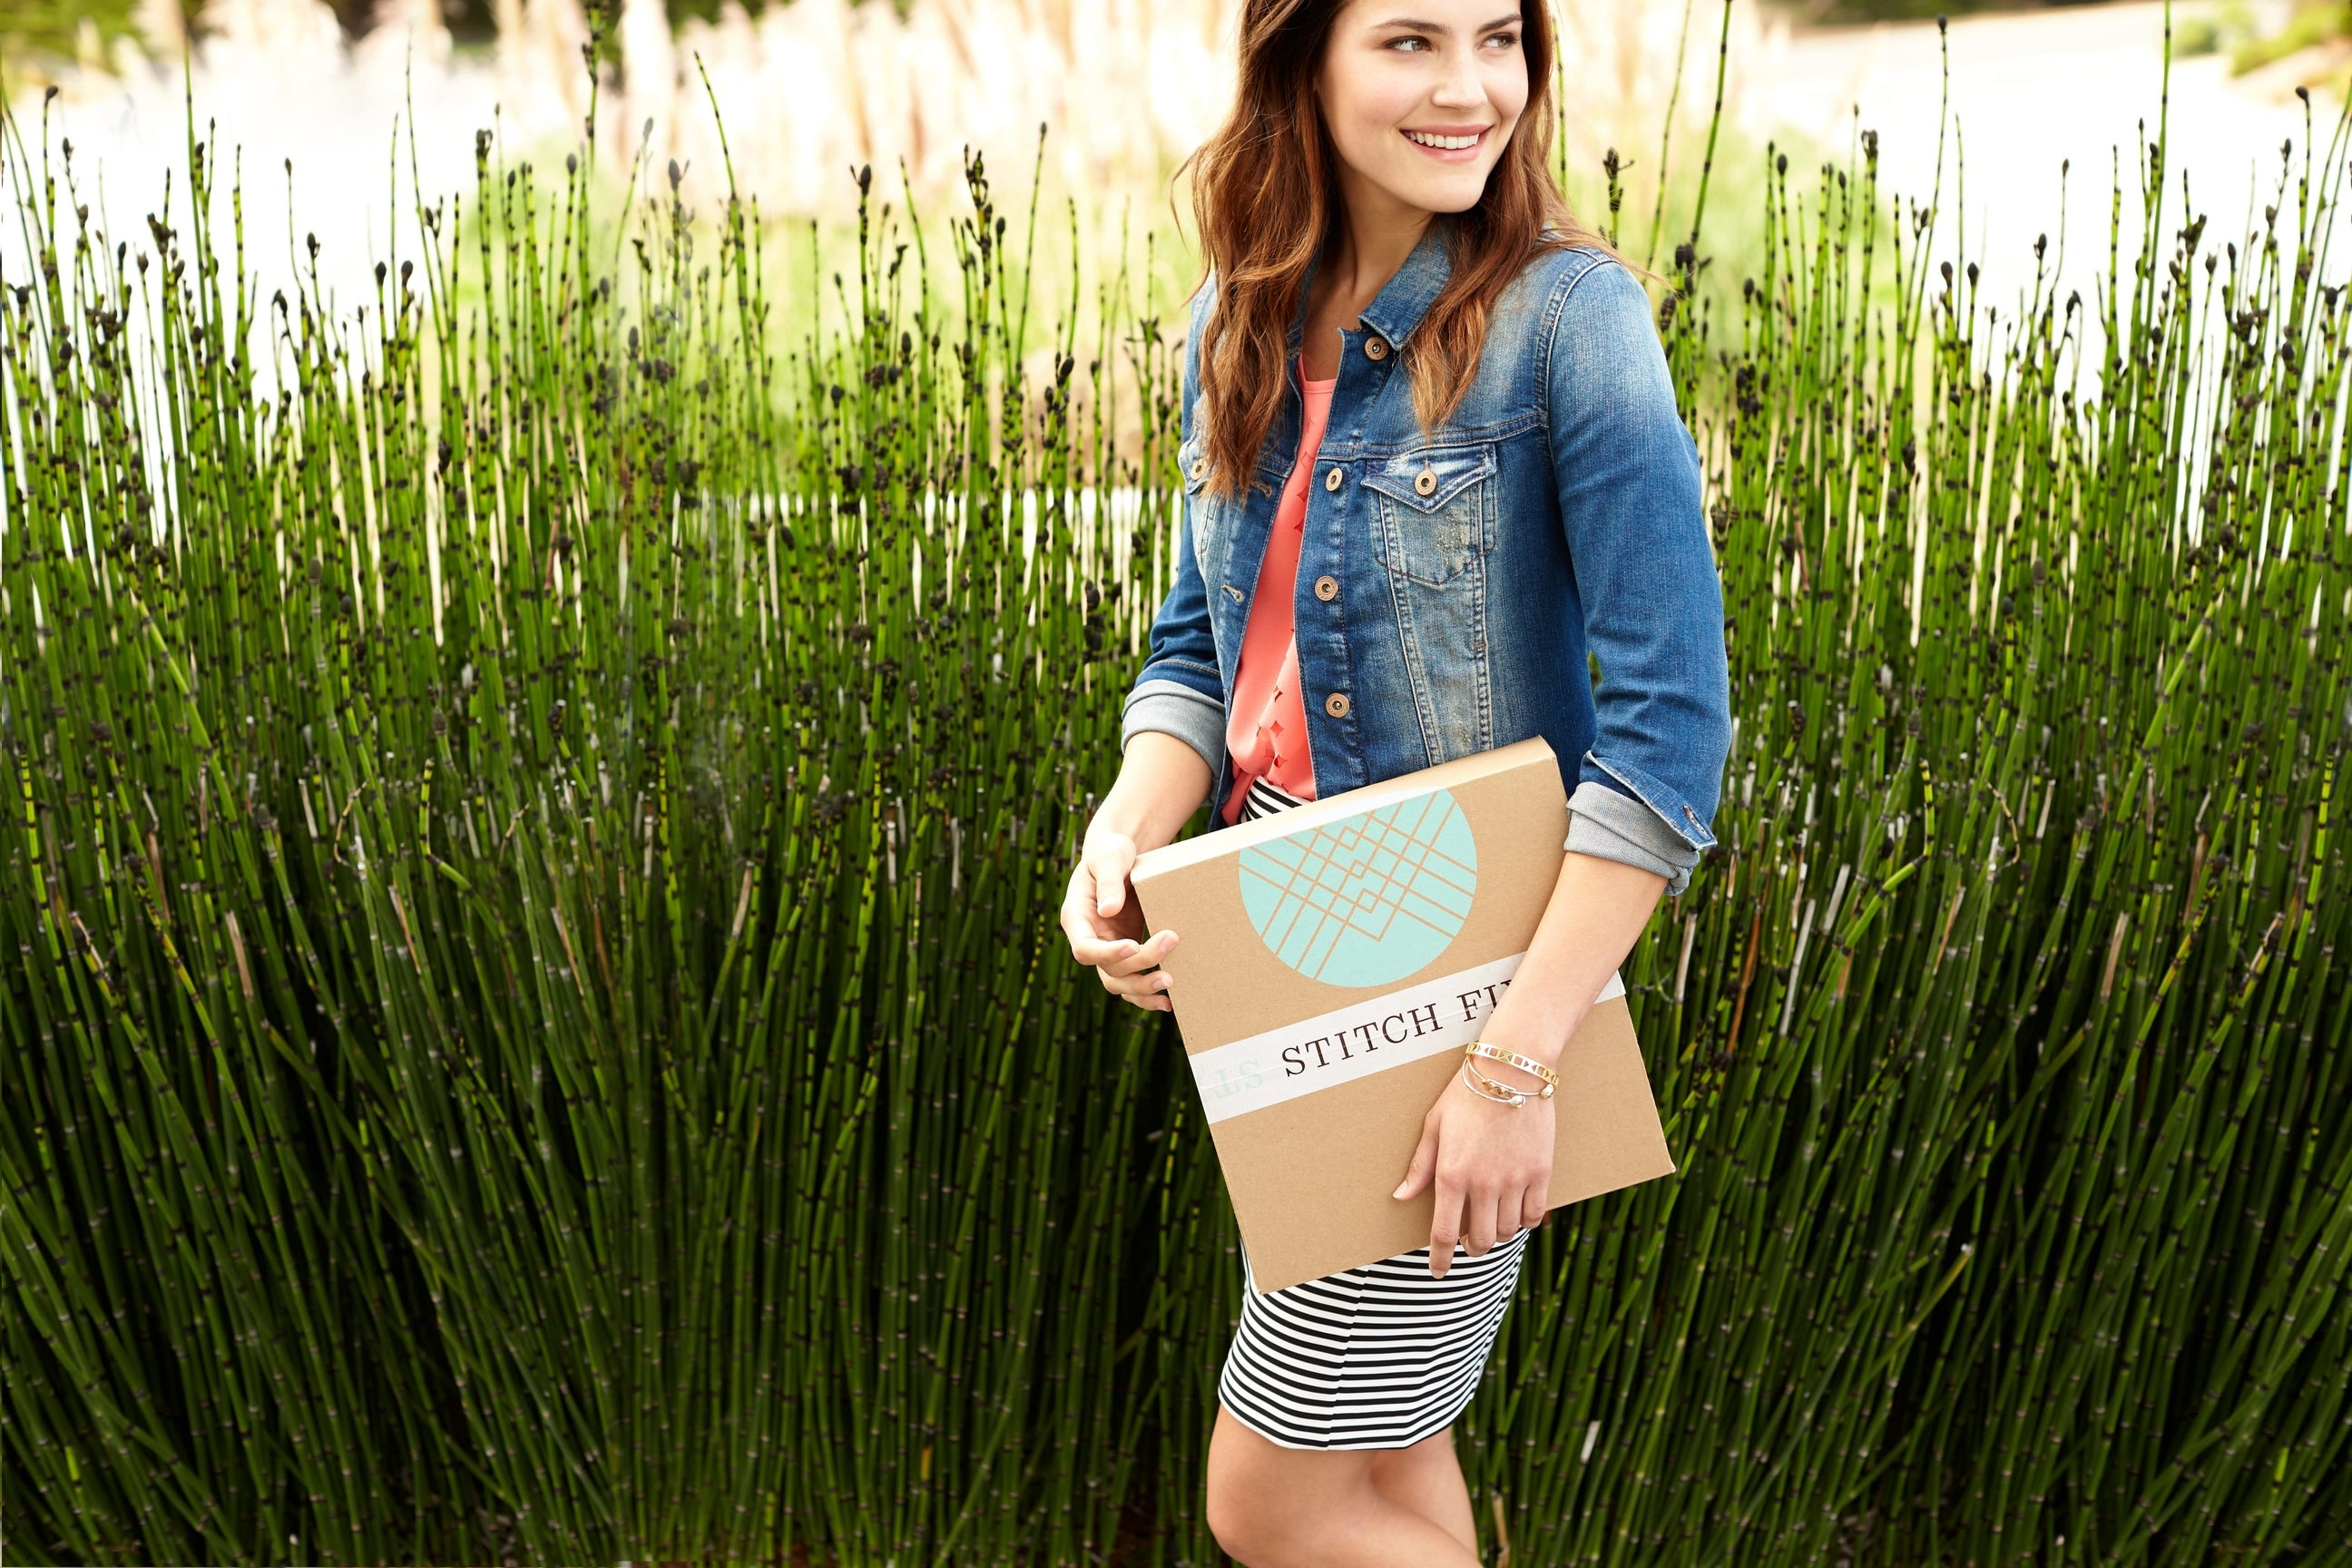 A smiling, fashionably dressed woman carrying a Stitch Fix box.